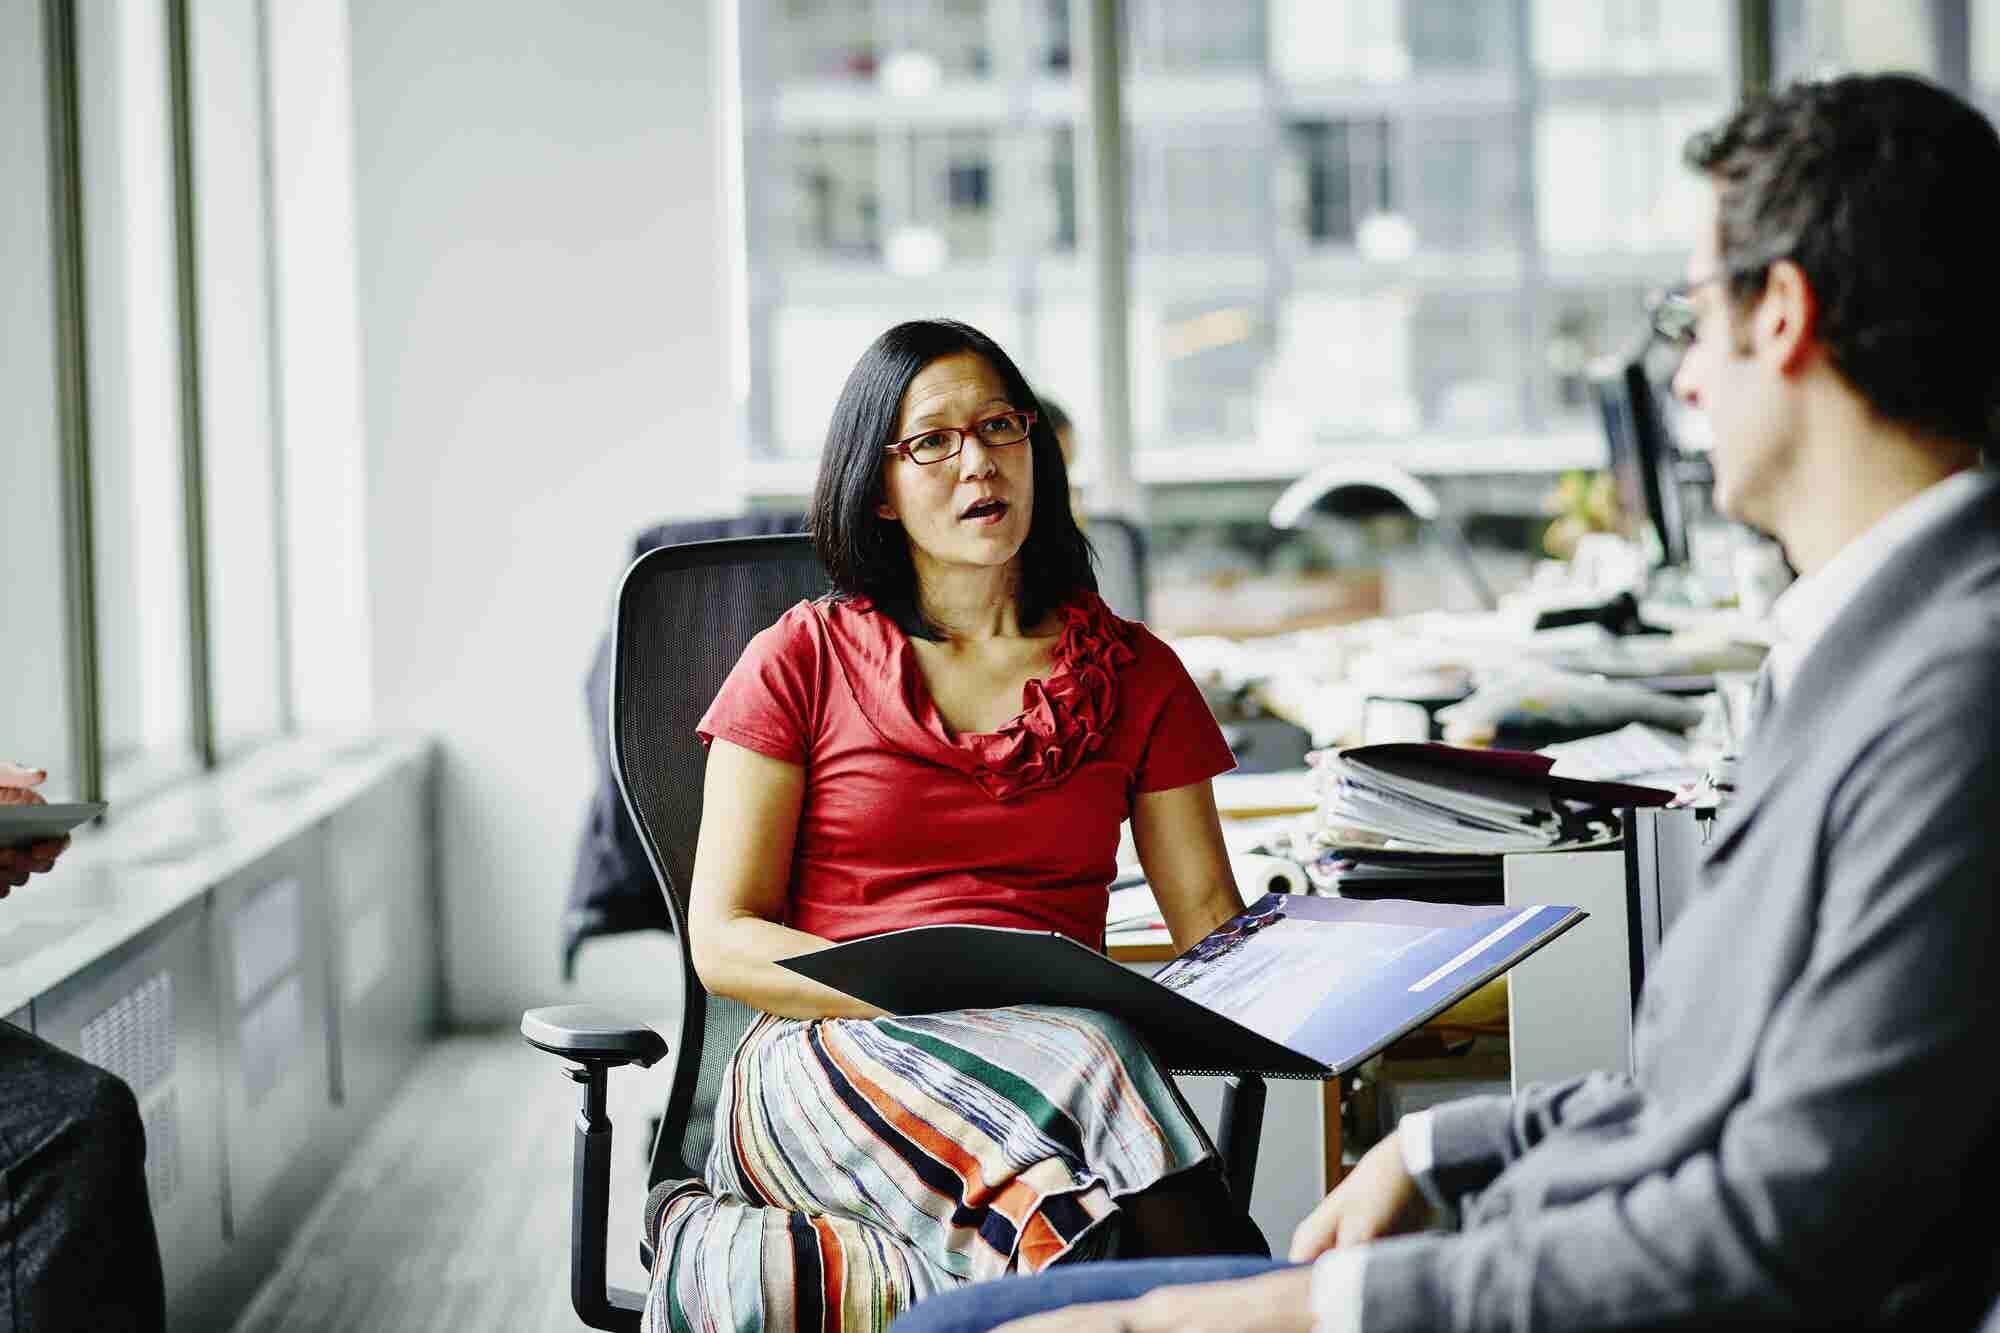 5 Unspoken Rules for First-Time Bosses